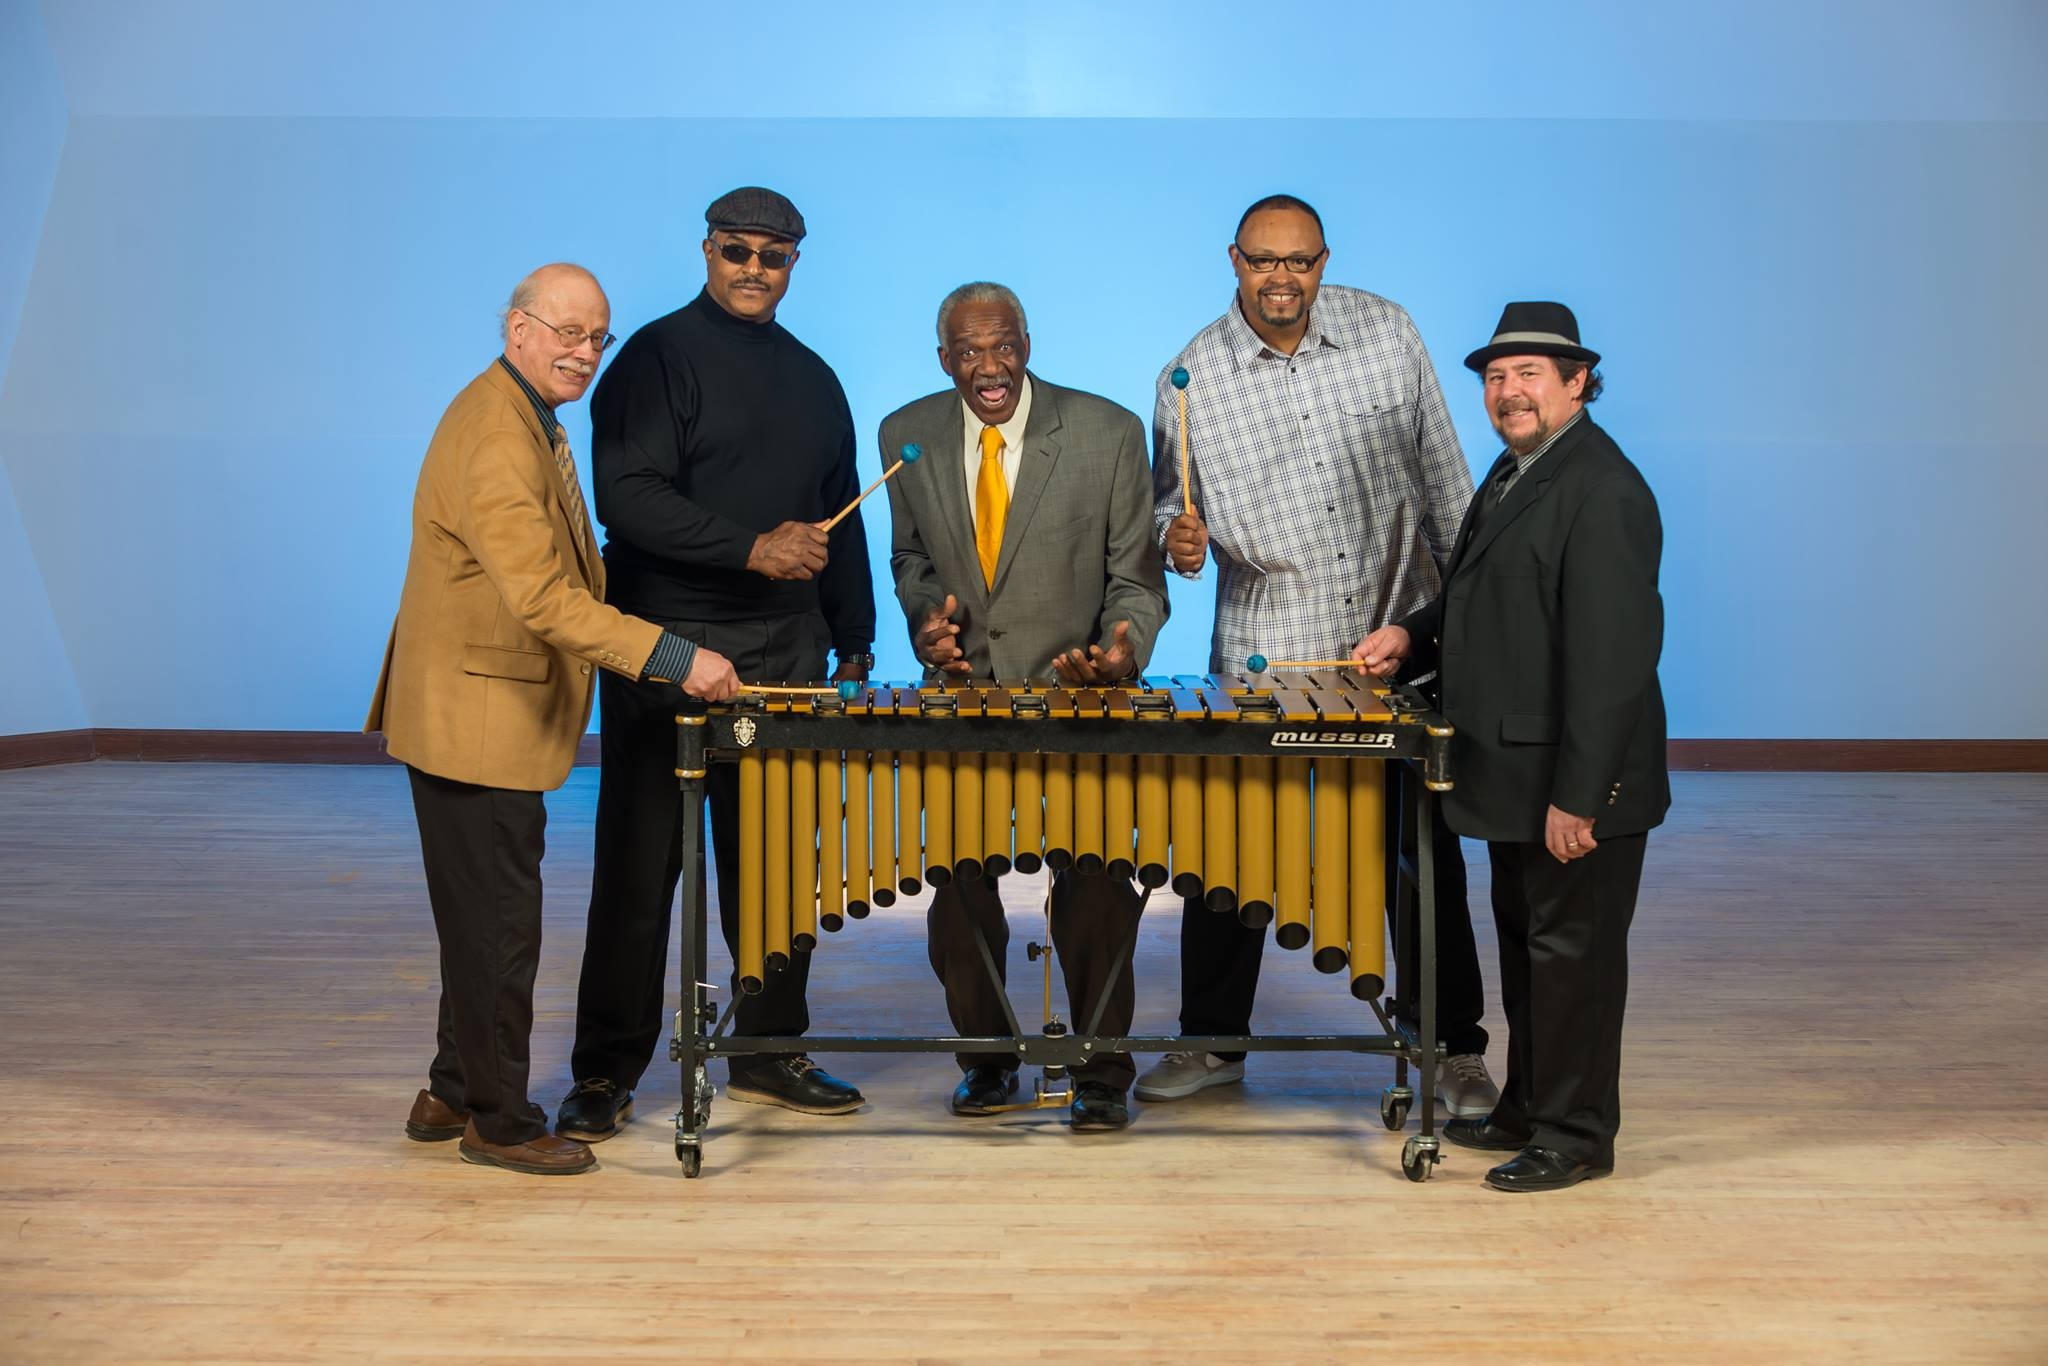 Cool as a cadillac with a snow plow, Harry Wilson, former Sun Ra vibes man, pictured here with his quartet.